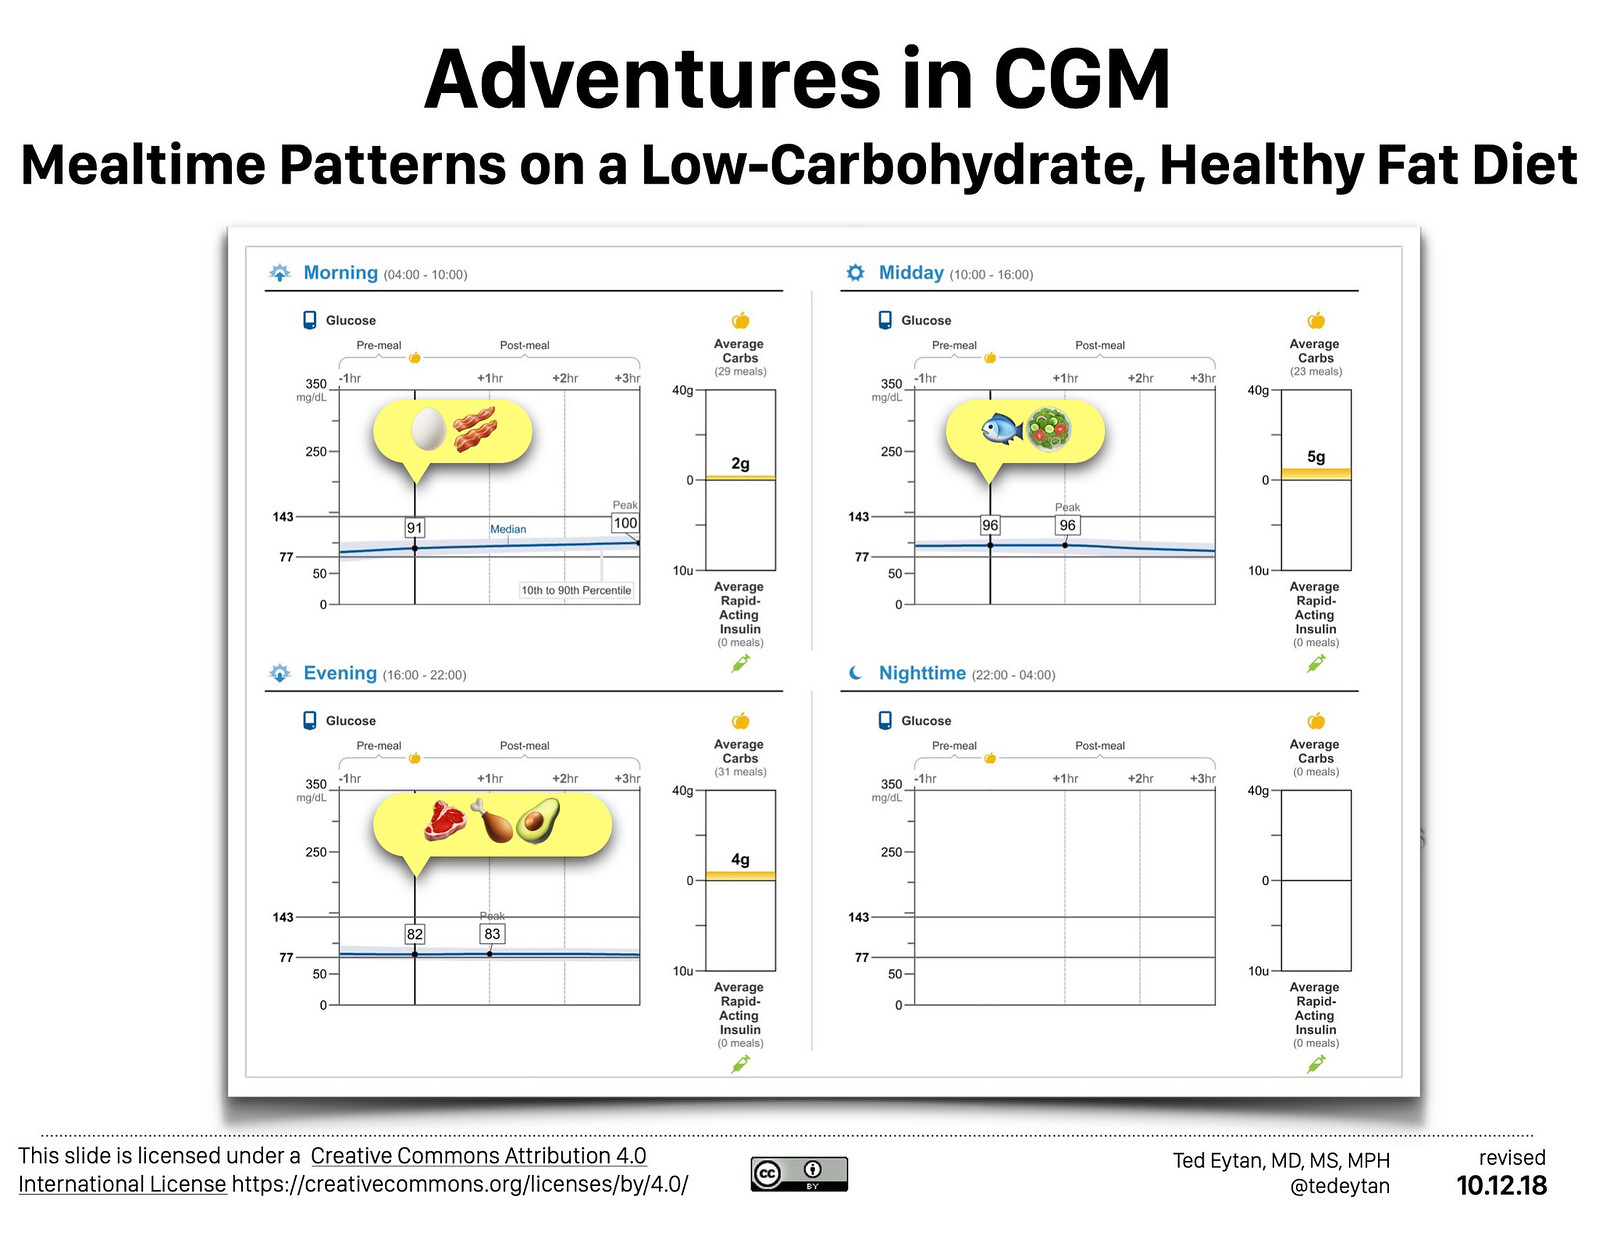 Part 5: Wearing a Continuous Glucose Monitor as a non-diabetic Physician: Beginning to Share My Data